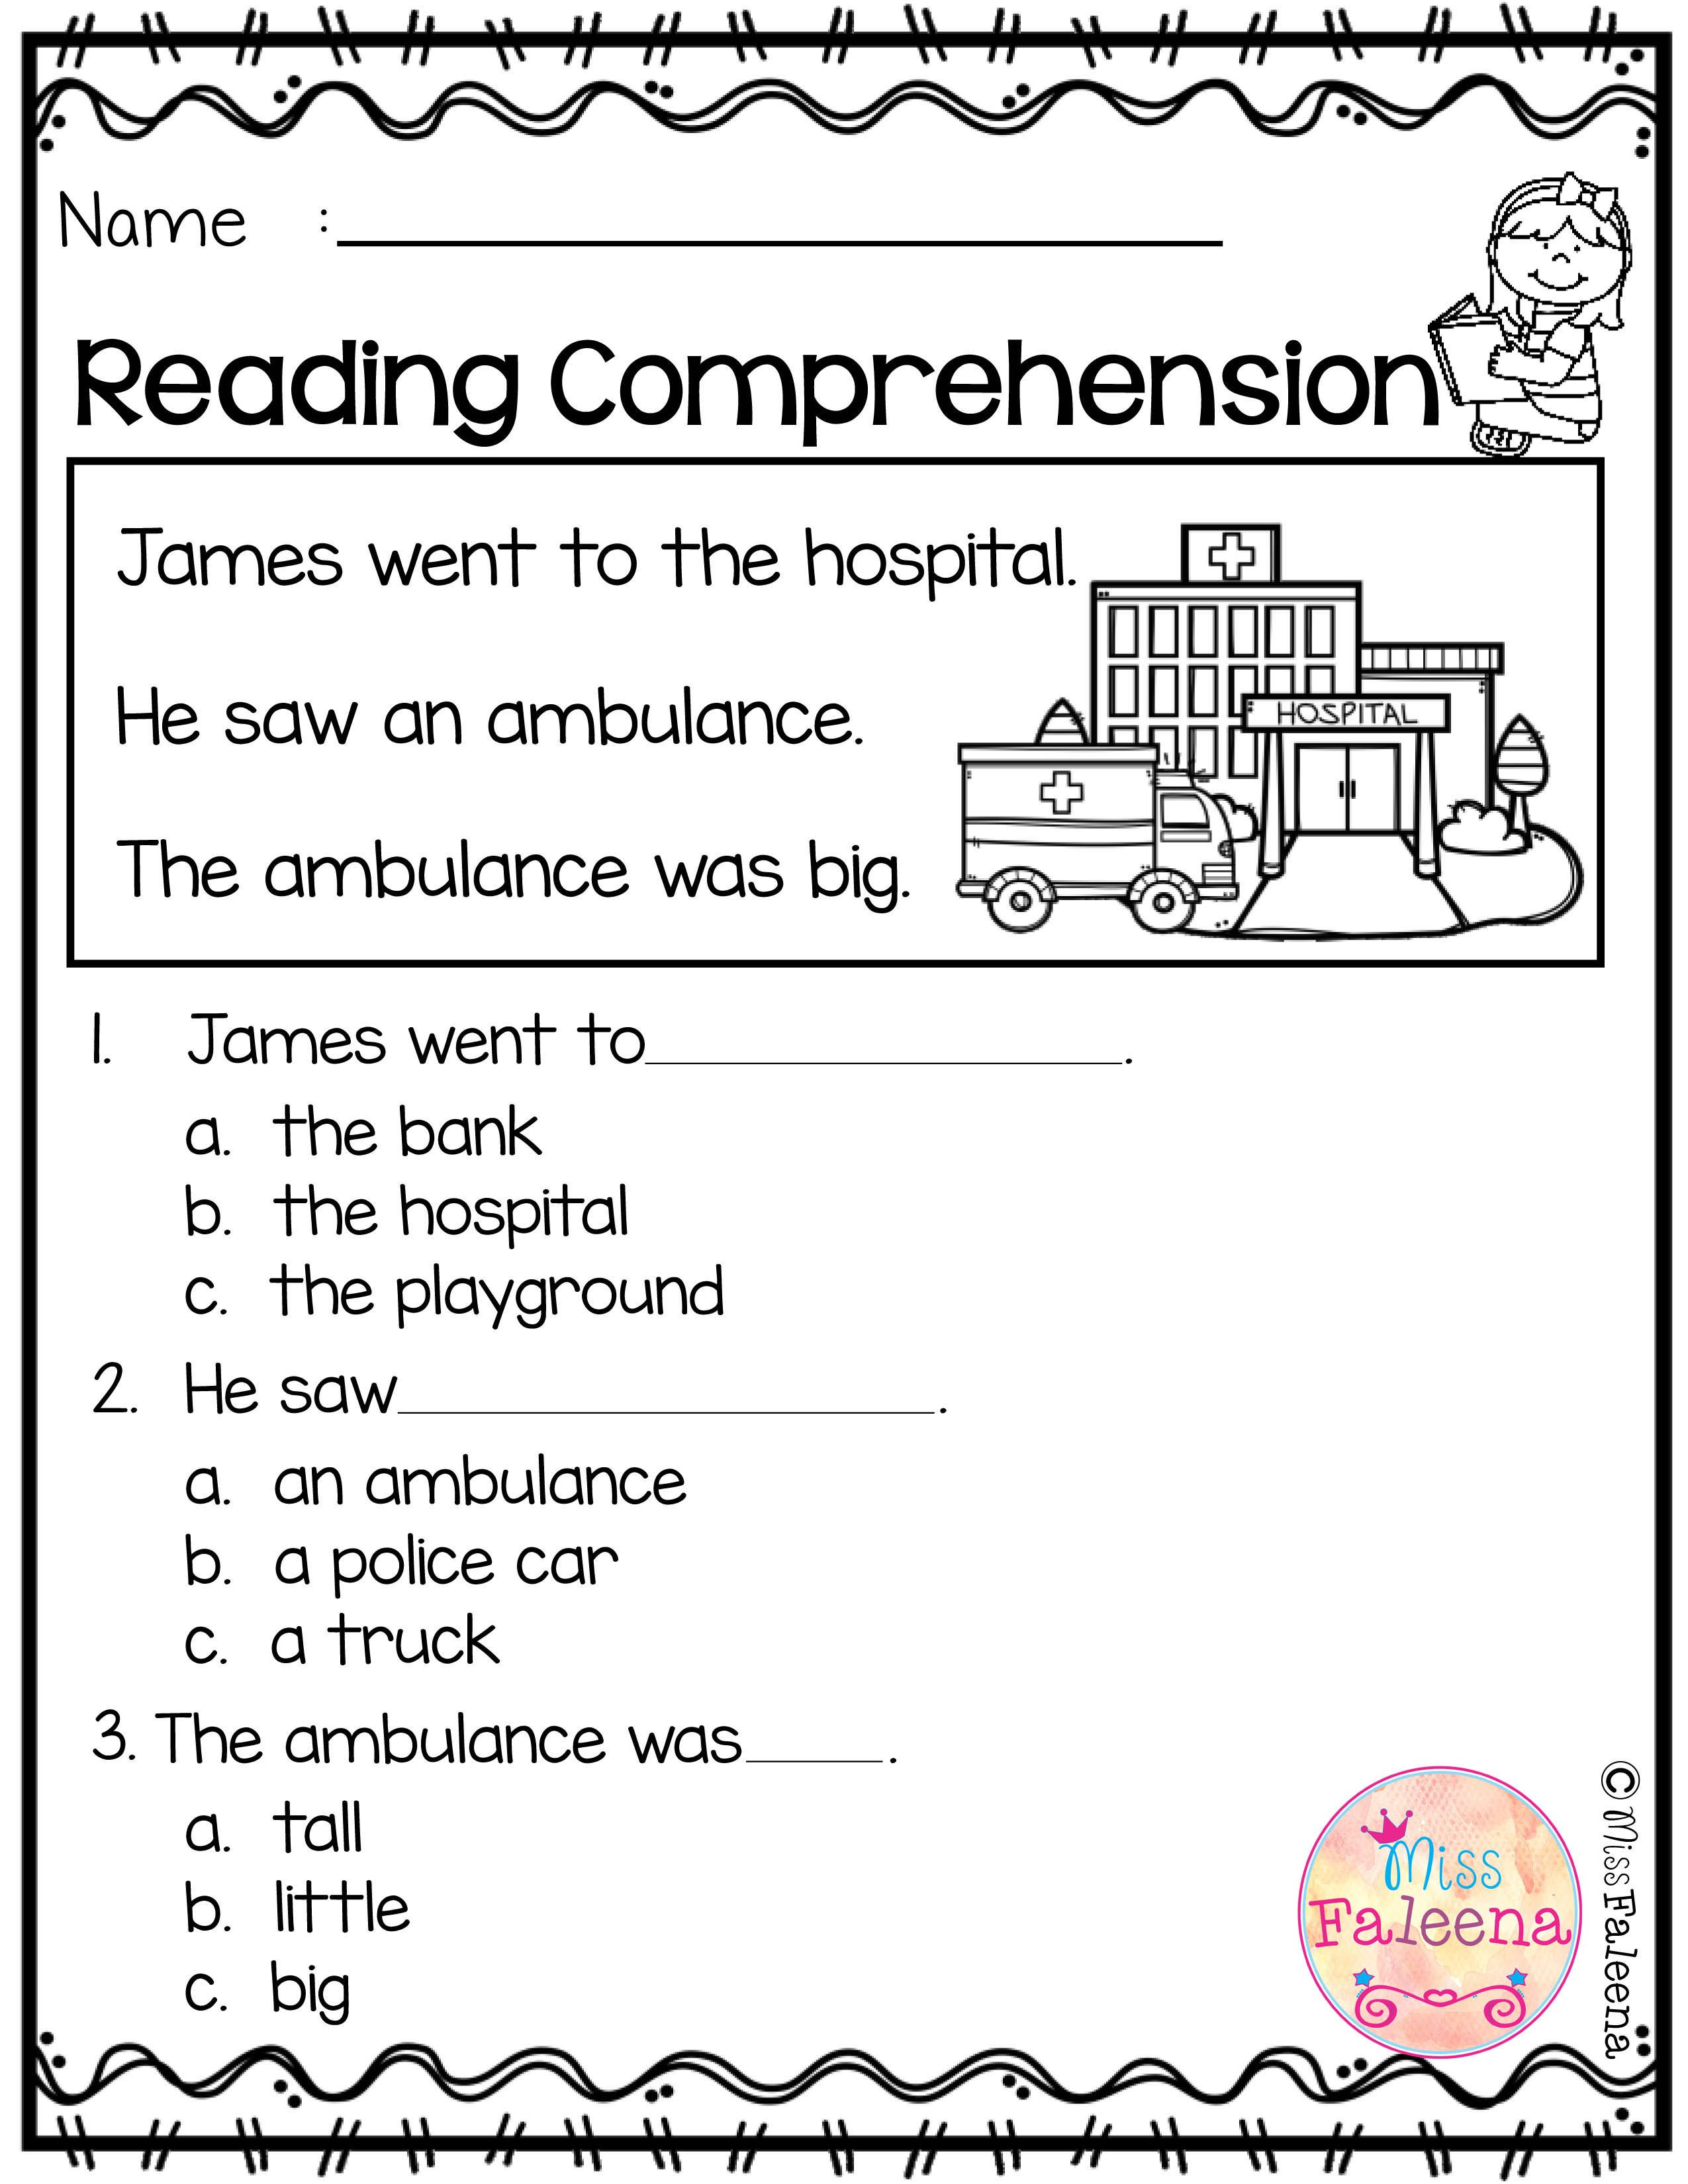 medium resolution of https://dubaikhalifas.com/reading-comprehension-passages-questions-first-grade-kinder-bundle-in-2020-with-images/